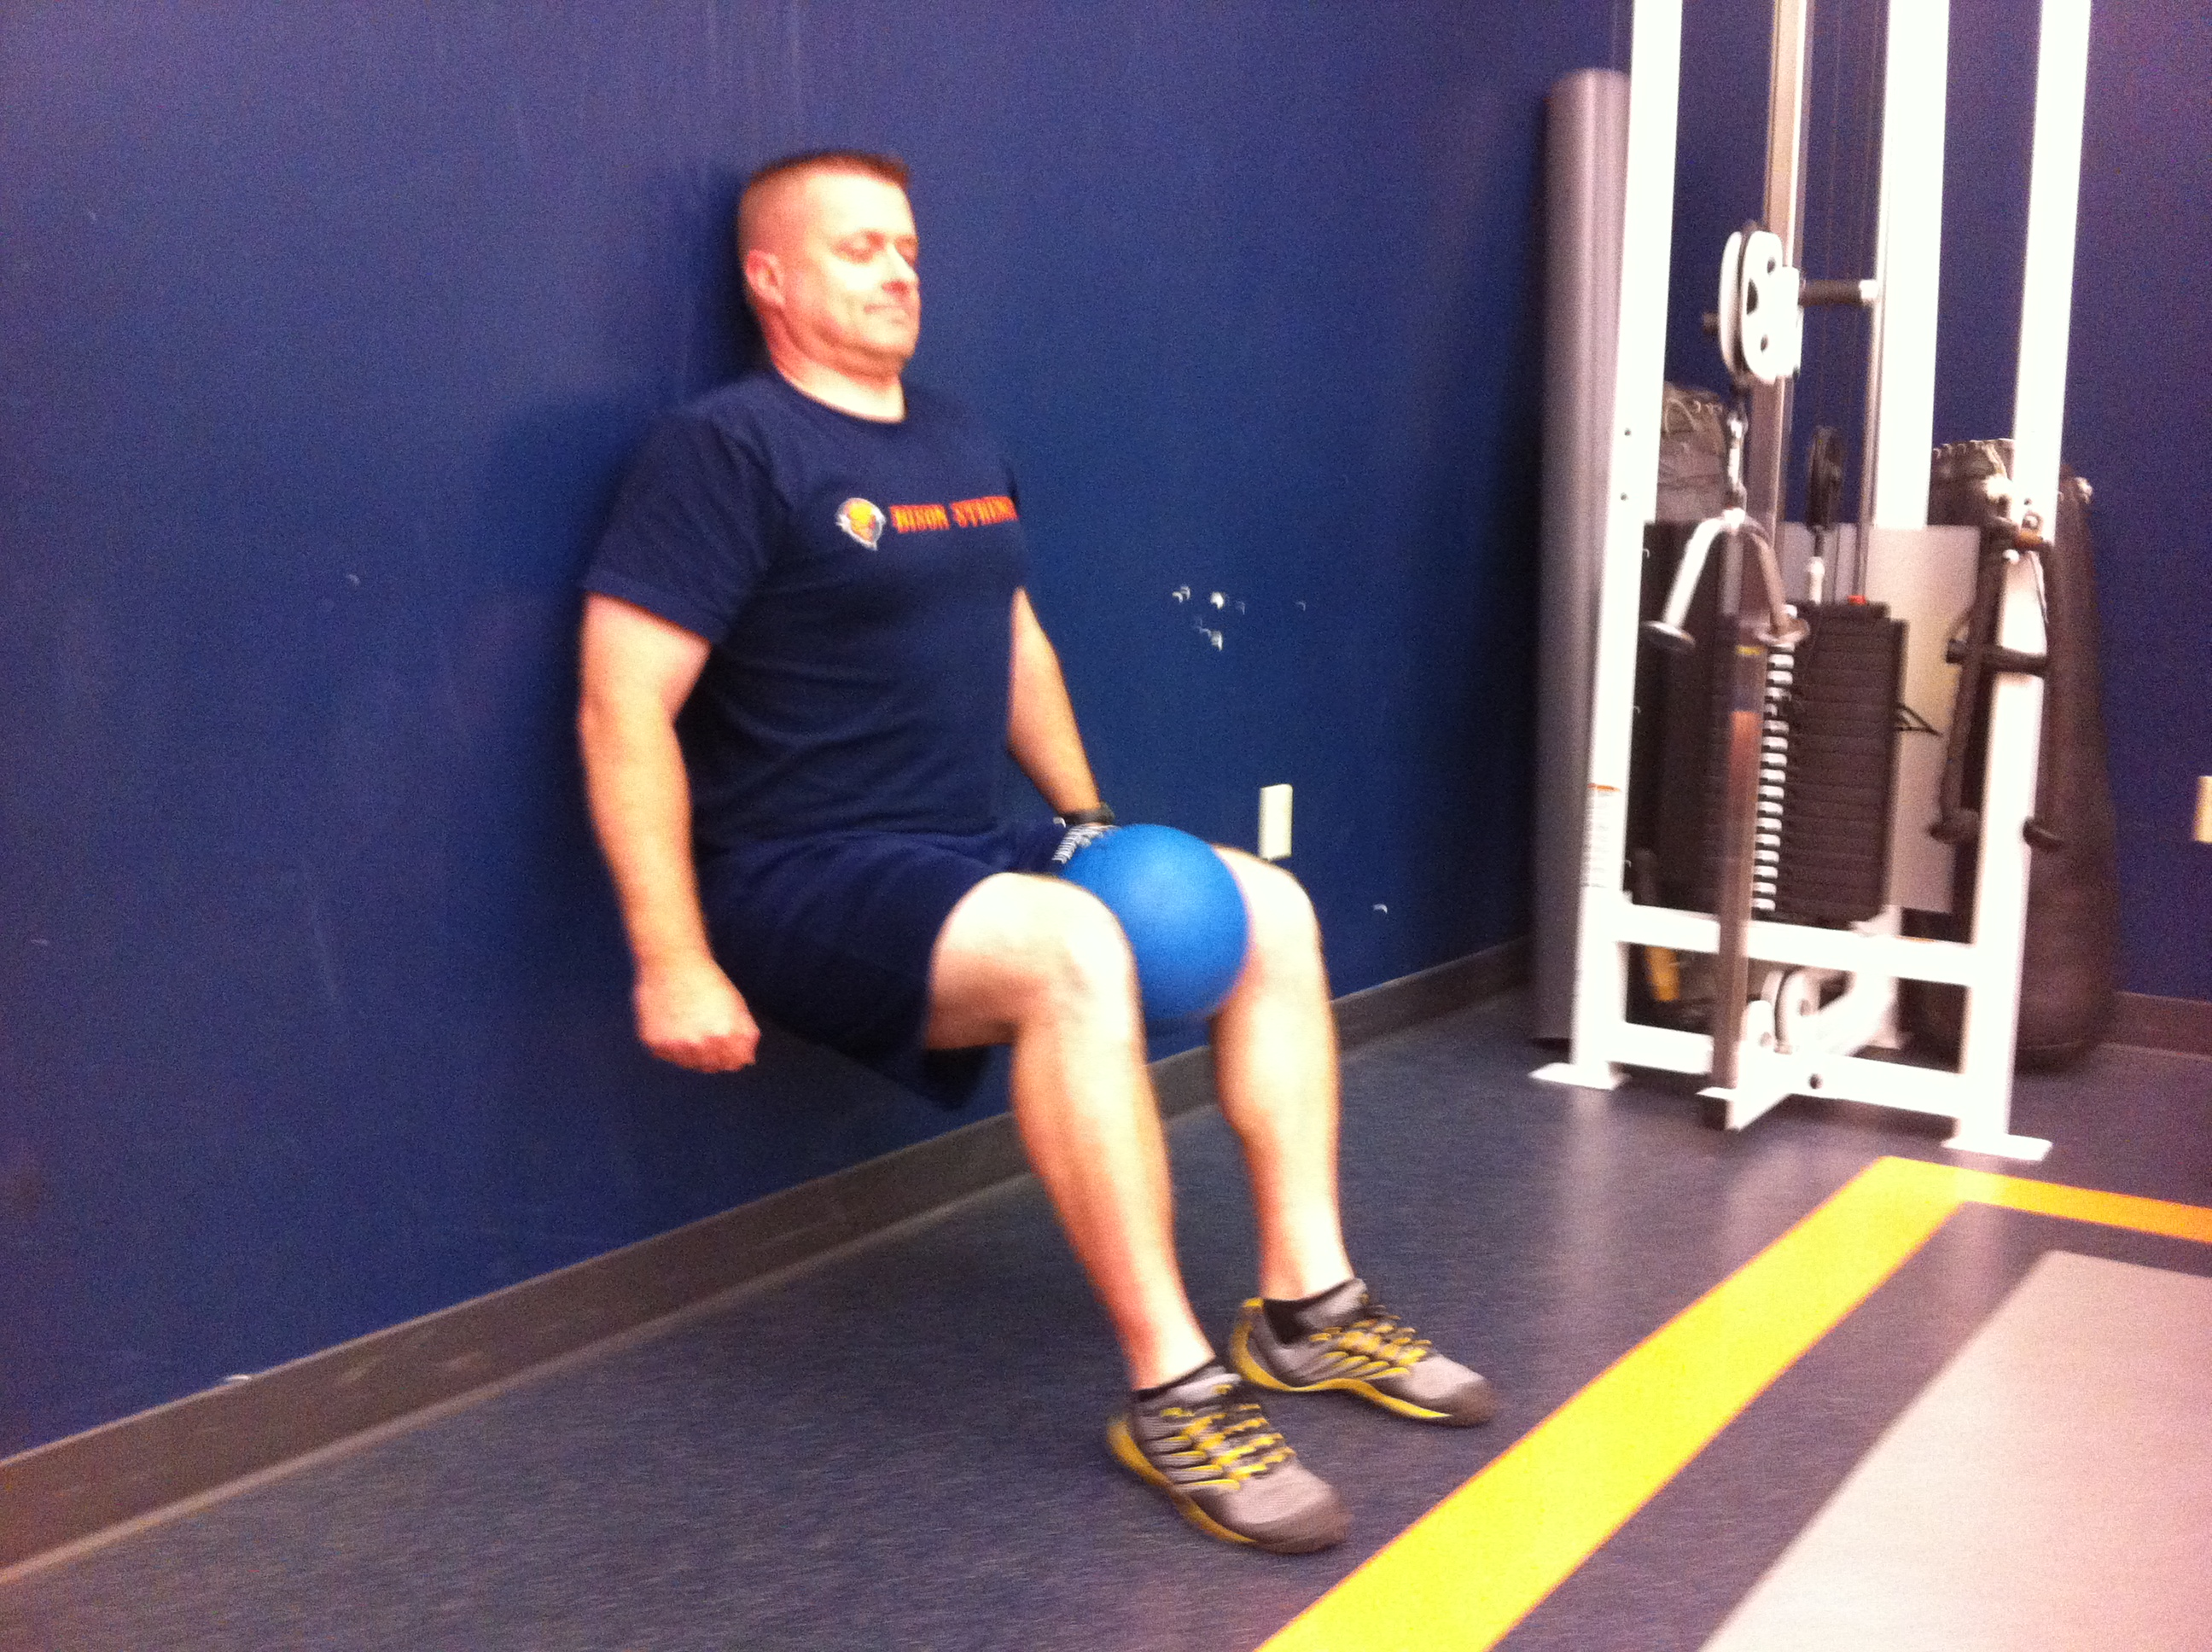 Isometric Wall Sit Variations | VarietyTrainer.com